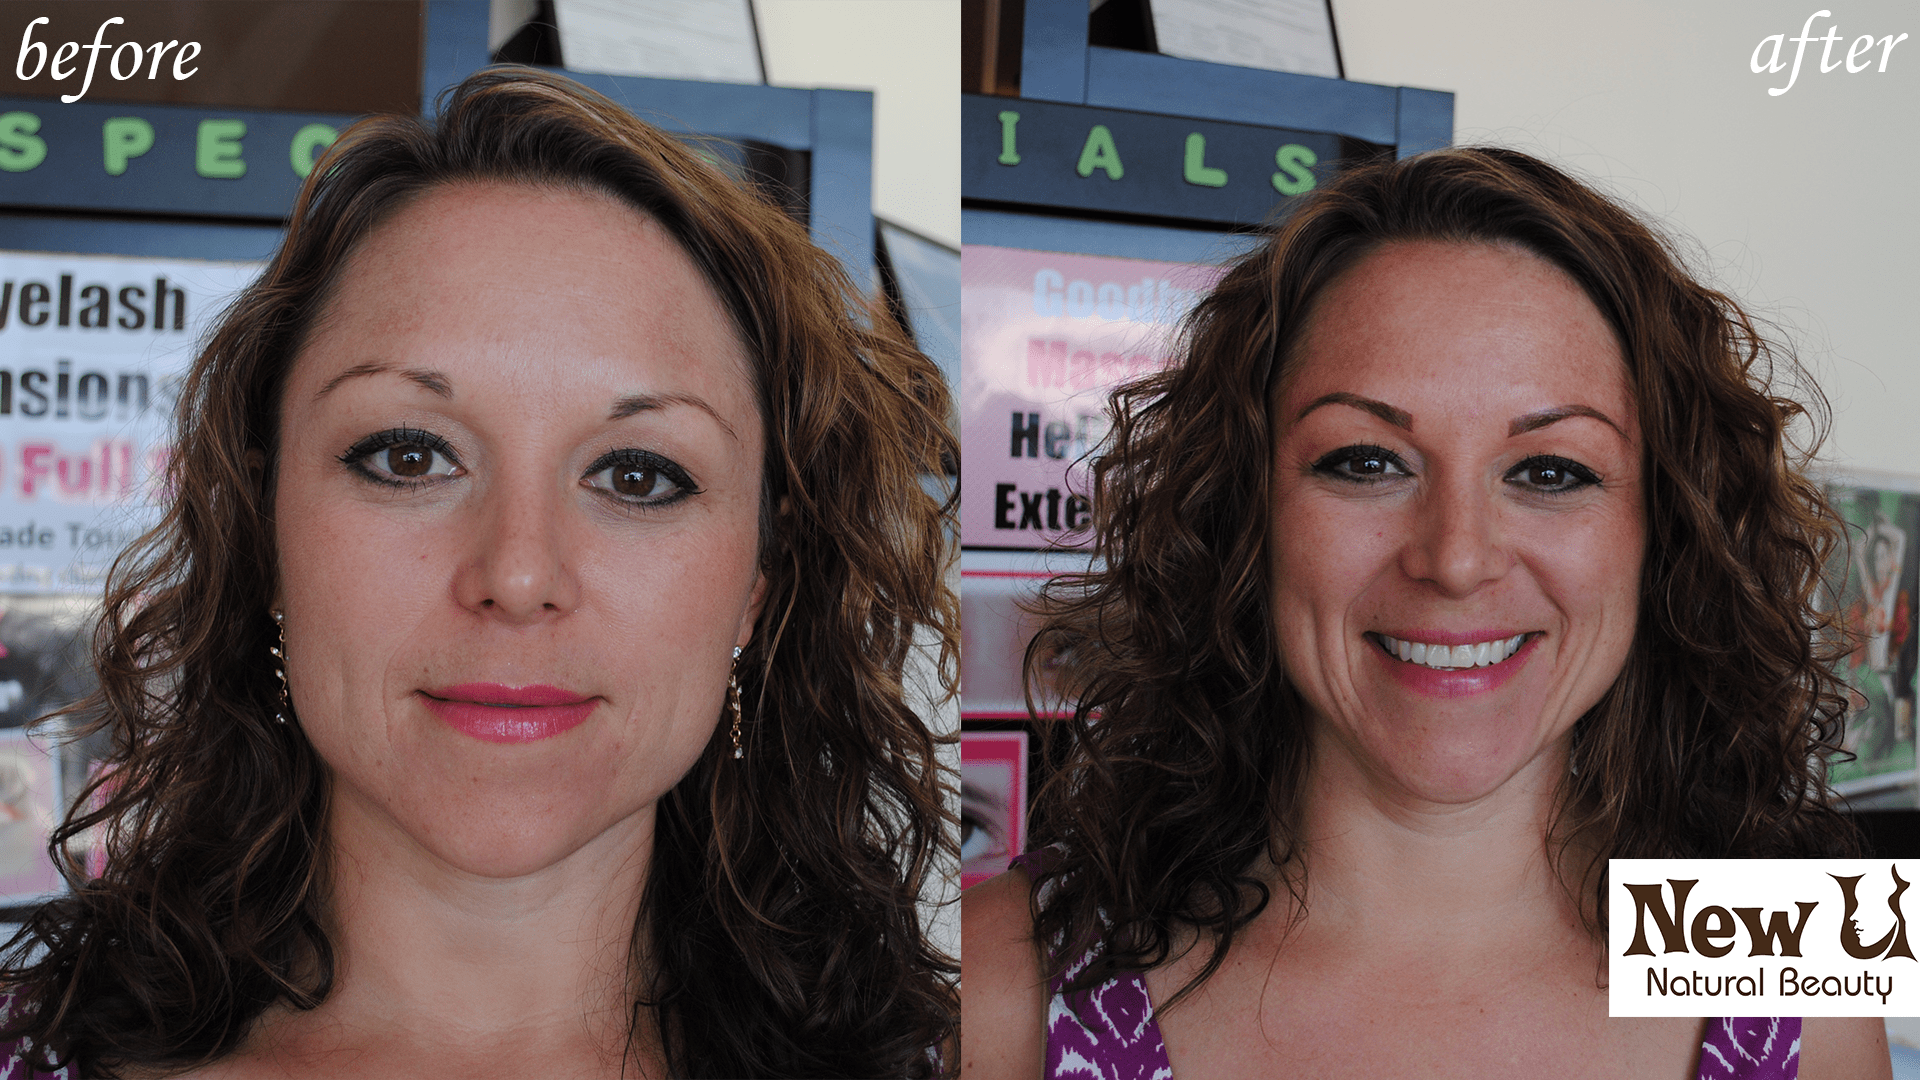 permanent-makeup-4-las-vegas-before-after